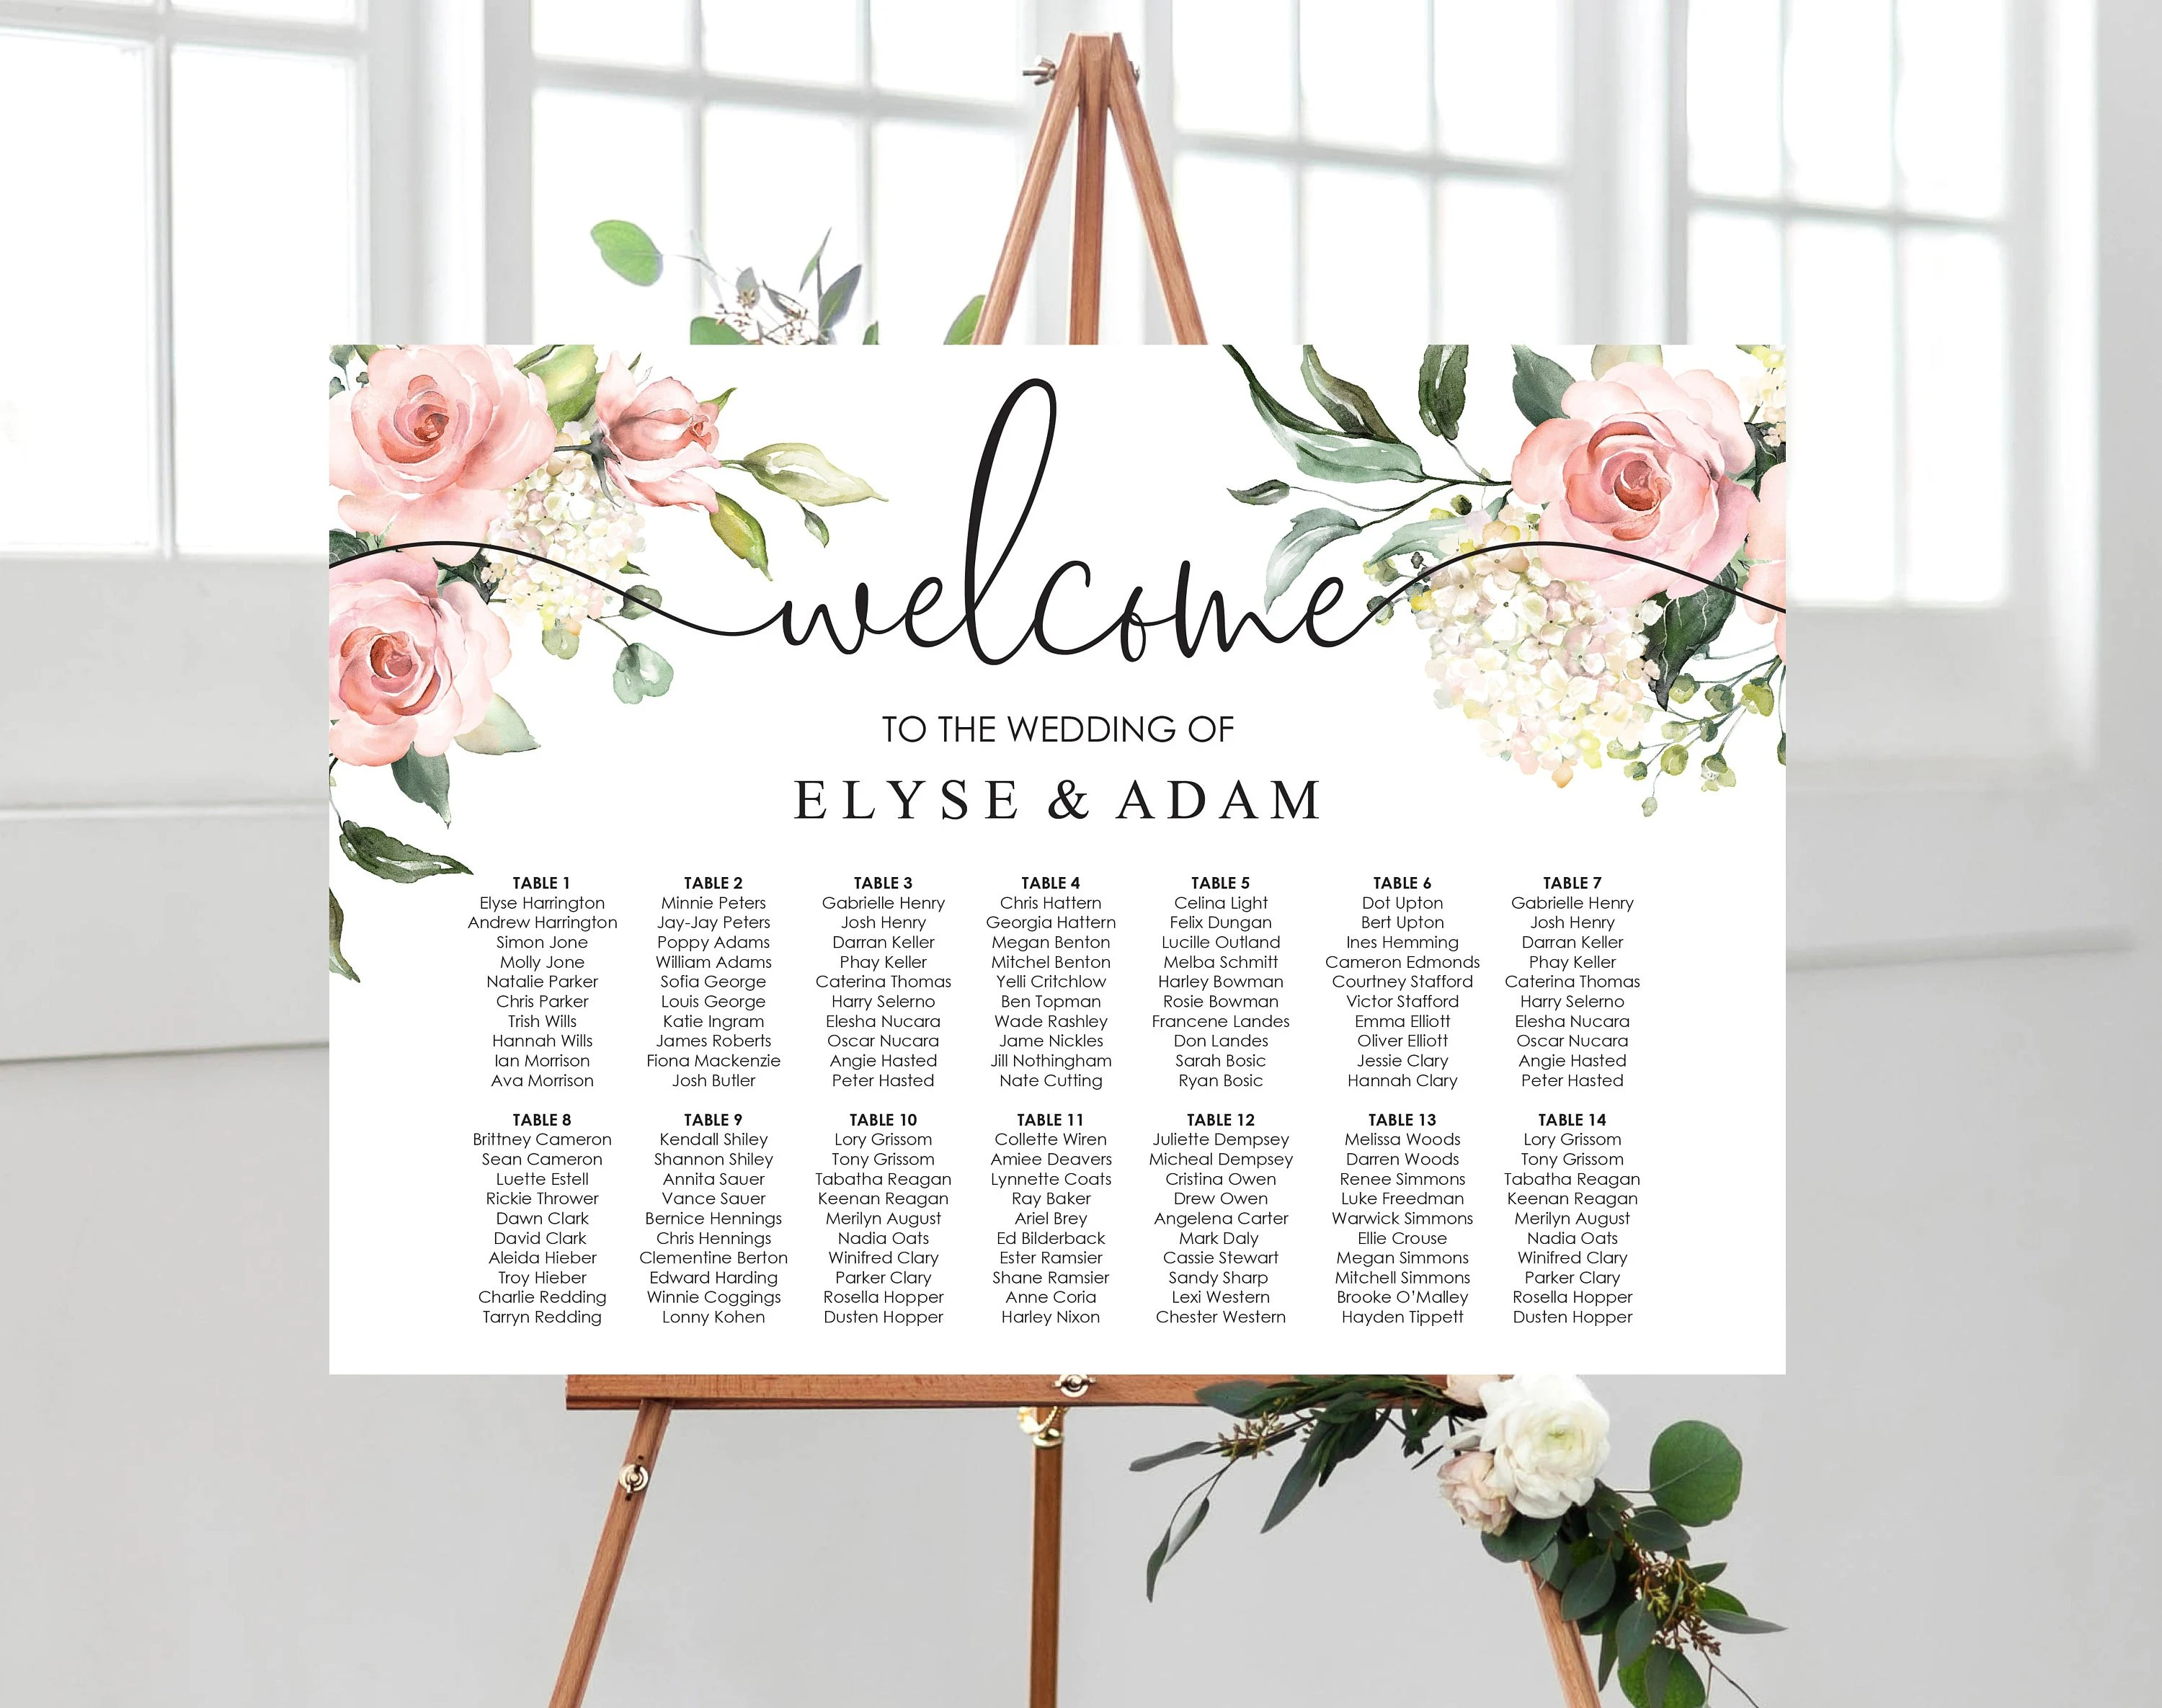 Printable blush floral wedding seating chart tables editable template diy stationery darcy also etsy rh